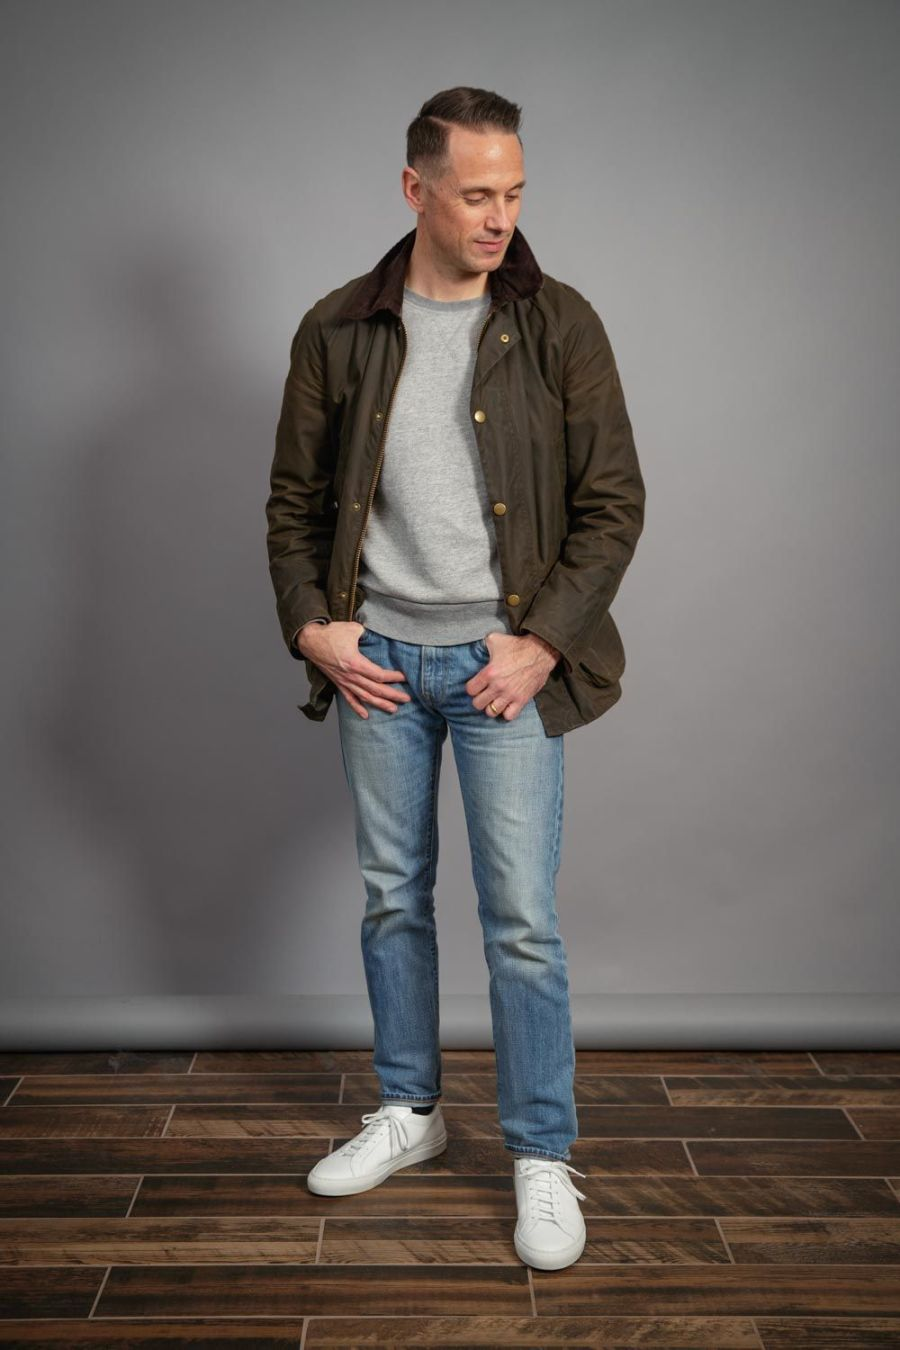 Barbour-waxed-jacket-for-men-heather-grey-casual-sweatshirt-light-wash-jeans-common-projects-sneakers